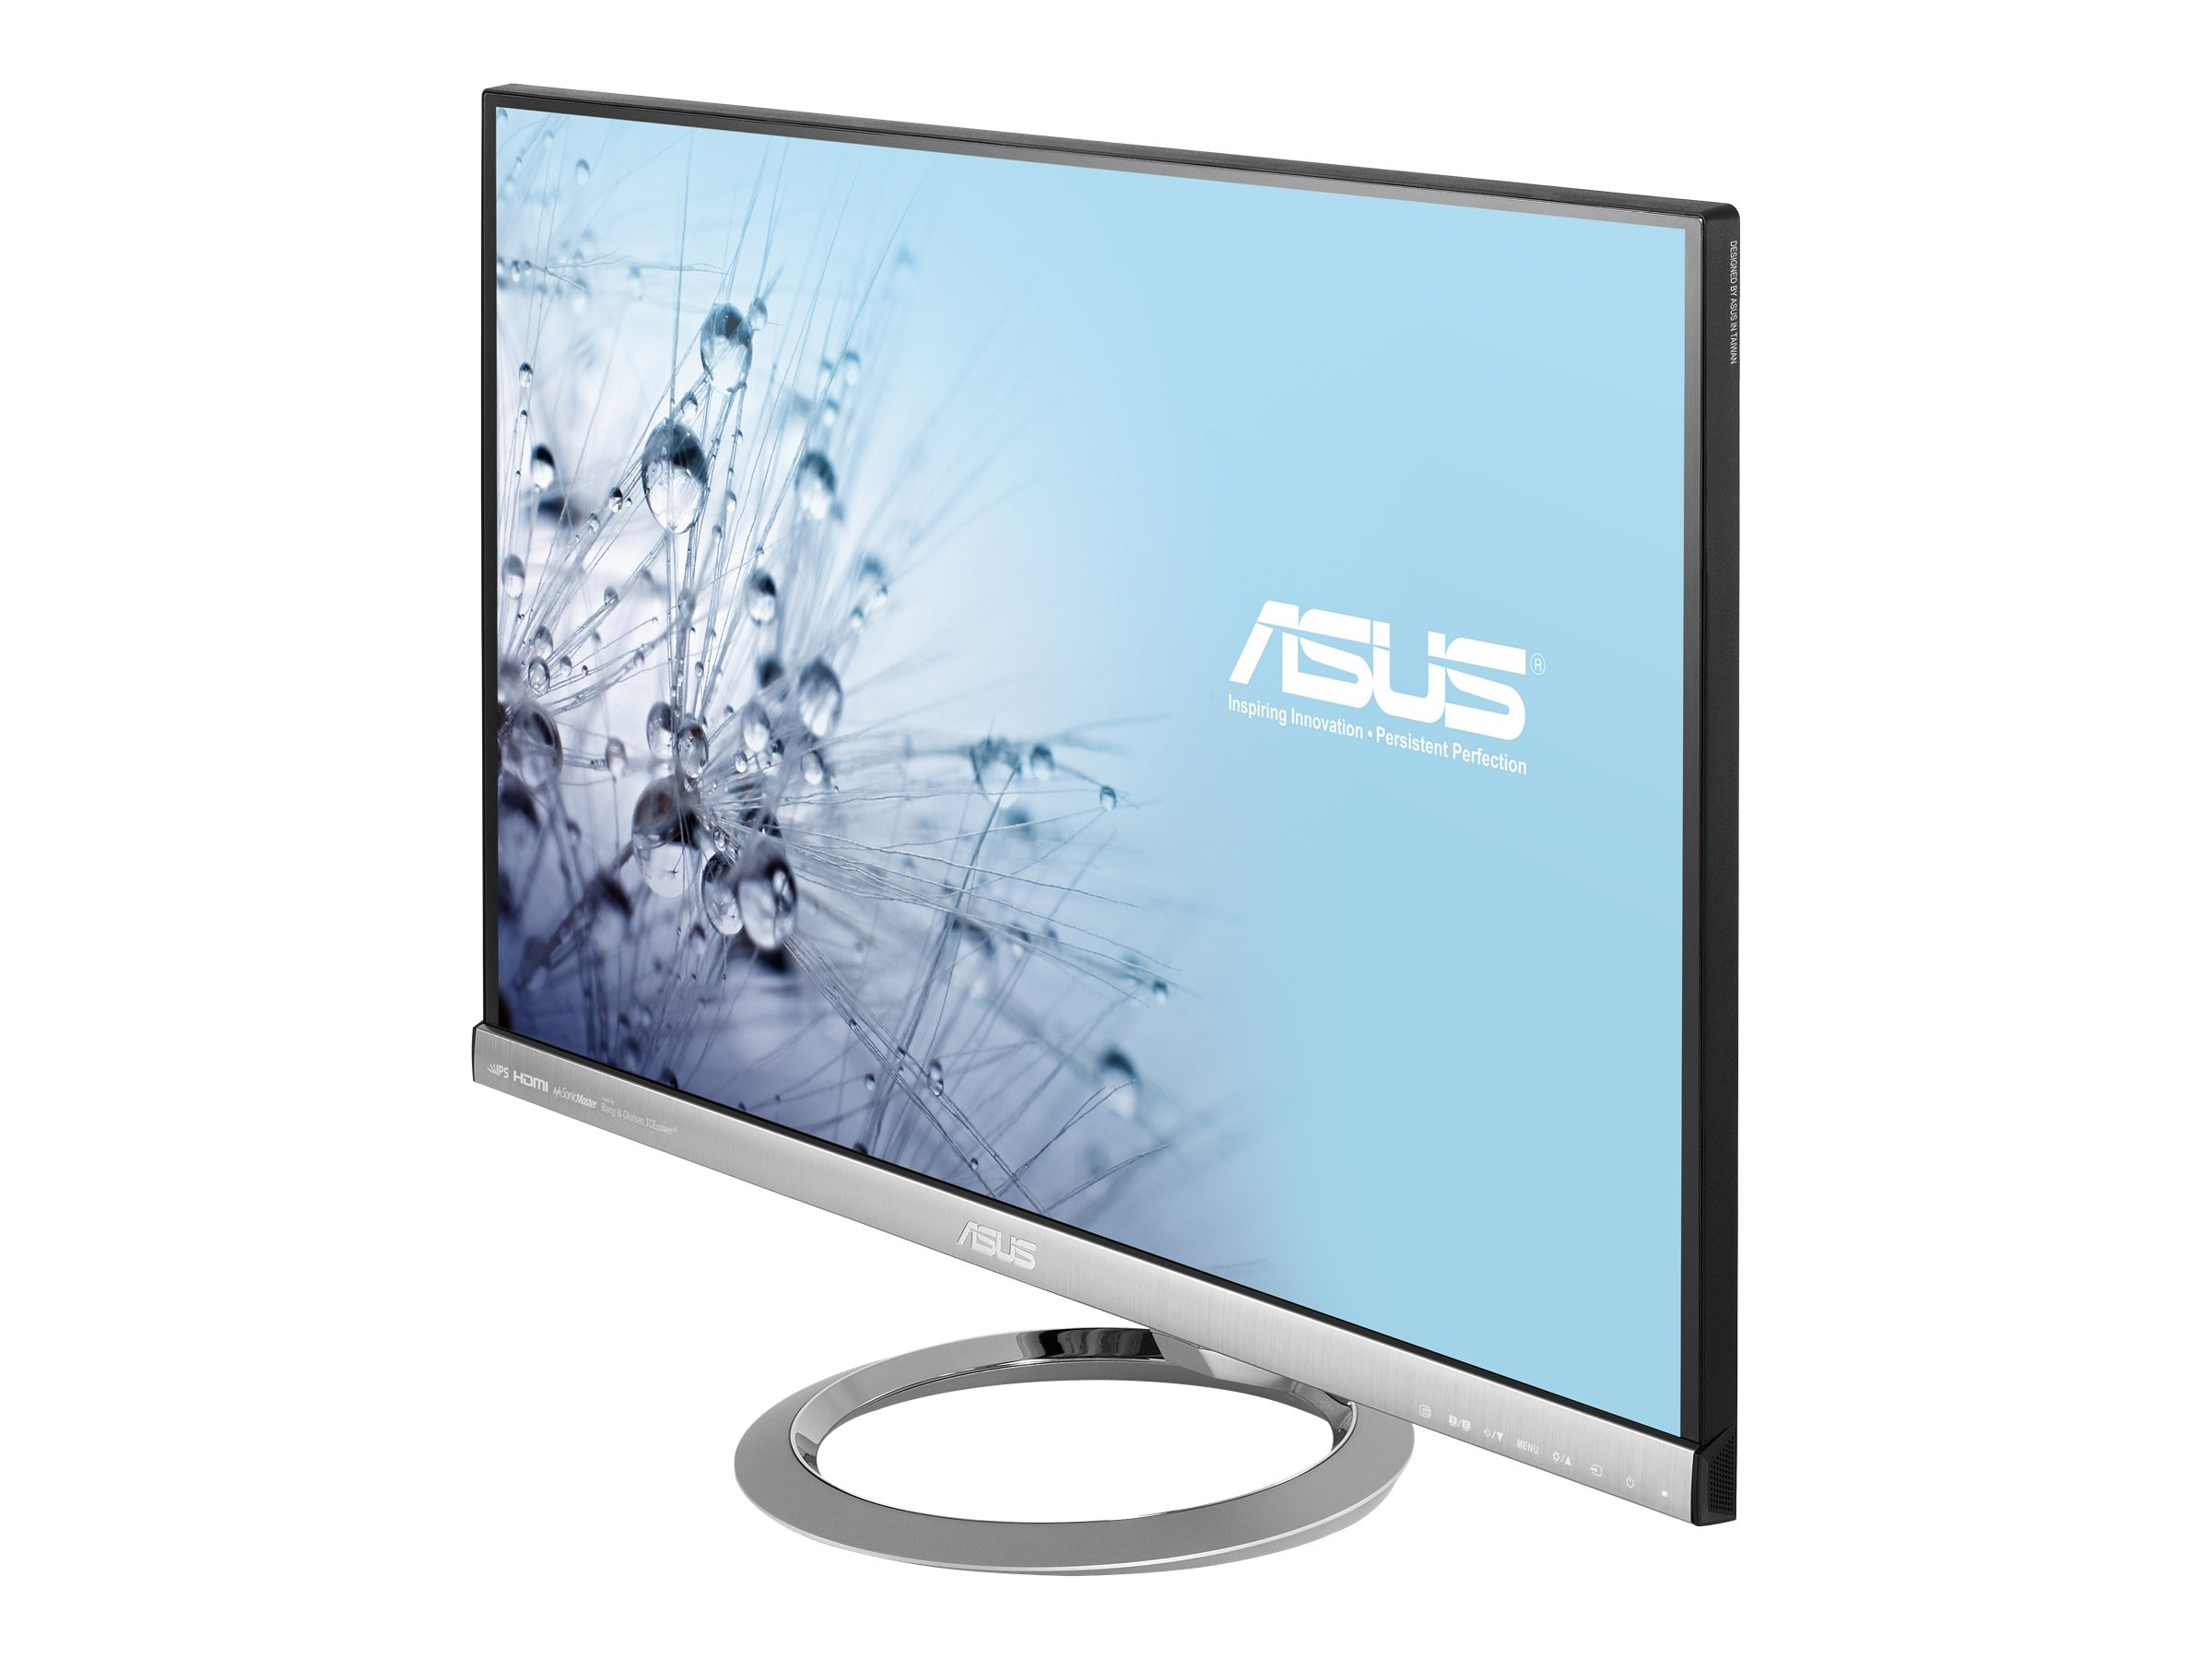 Asus 27 MX279H Full HD LED-LCD Frameless Monitor, MX279H